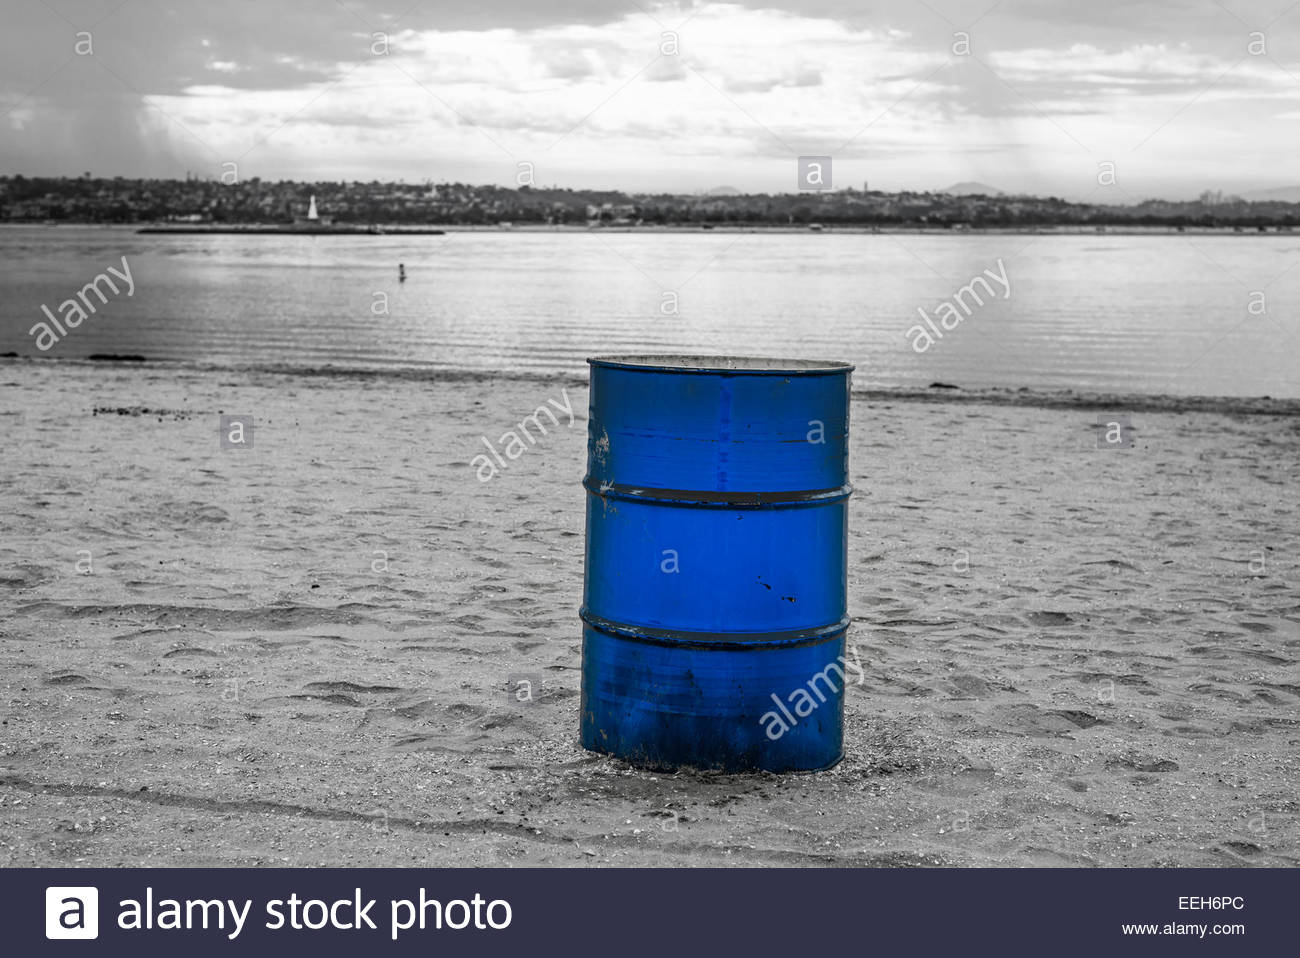 garbage can blue stock photos garbage can blue stock images alamy. Black Bedroom Furniture Sets. Home Design Ideas